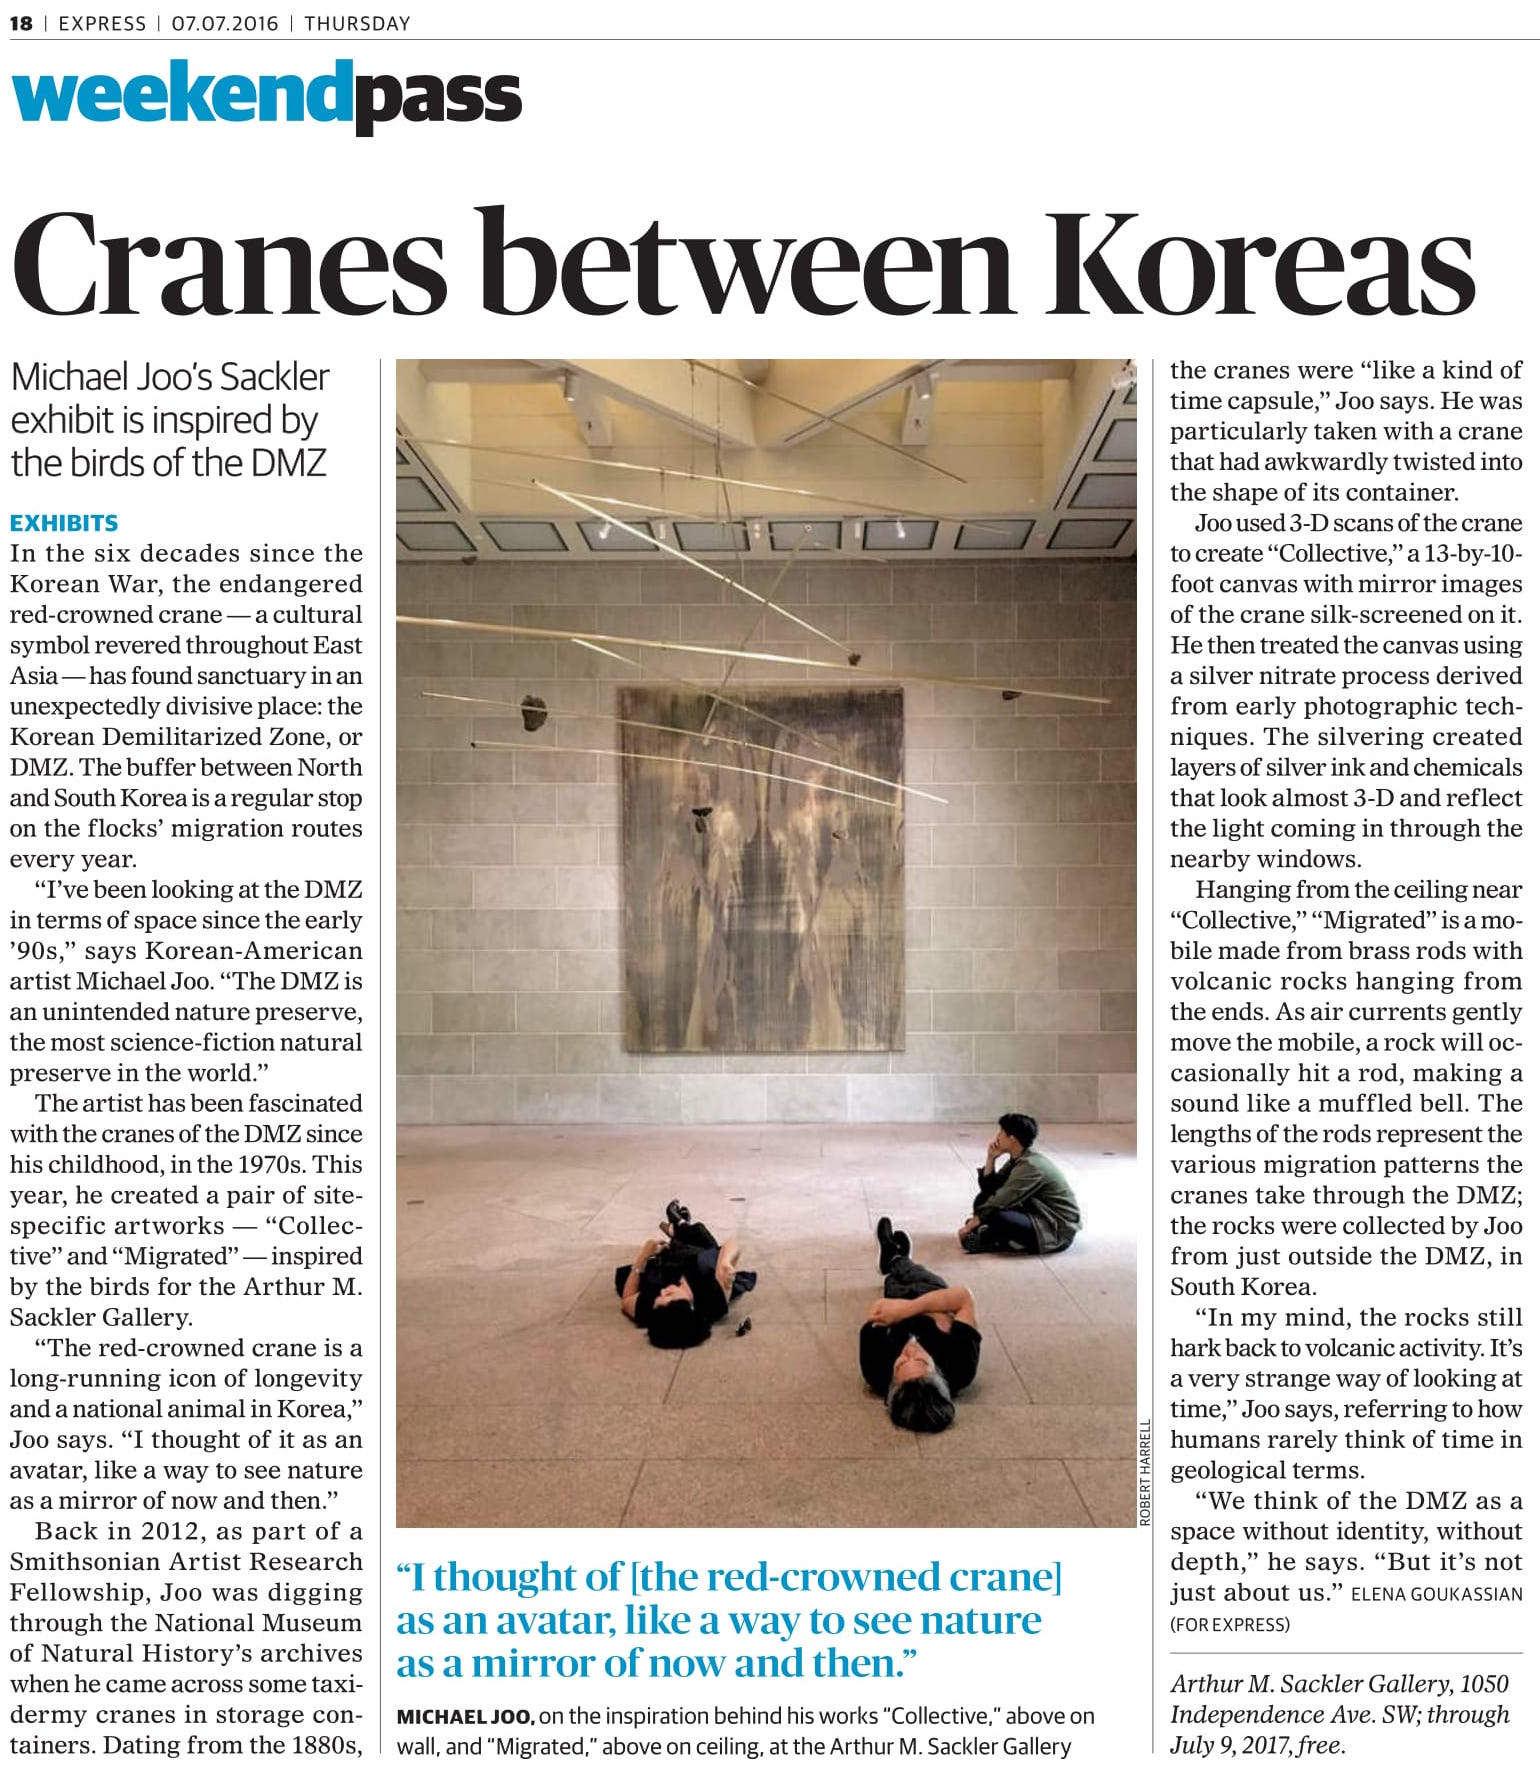 https://www.washingtonpost.com/express/wp/2016/07/07/a-new-sackler-gallery-exhibit-is-inspired-by-cranes-at-the-korean-demilitarized-zone